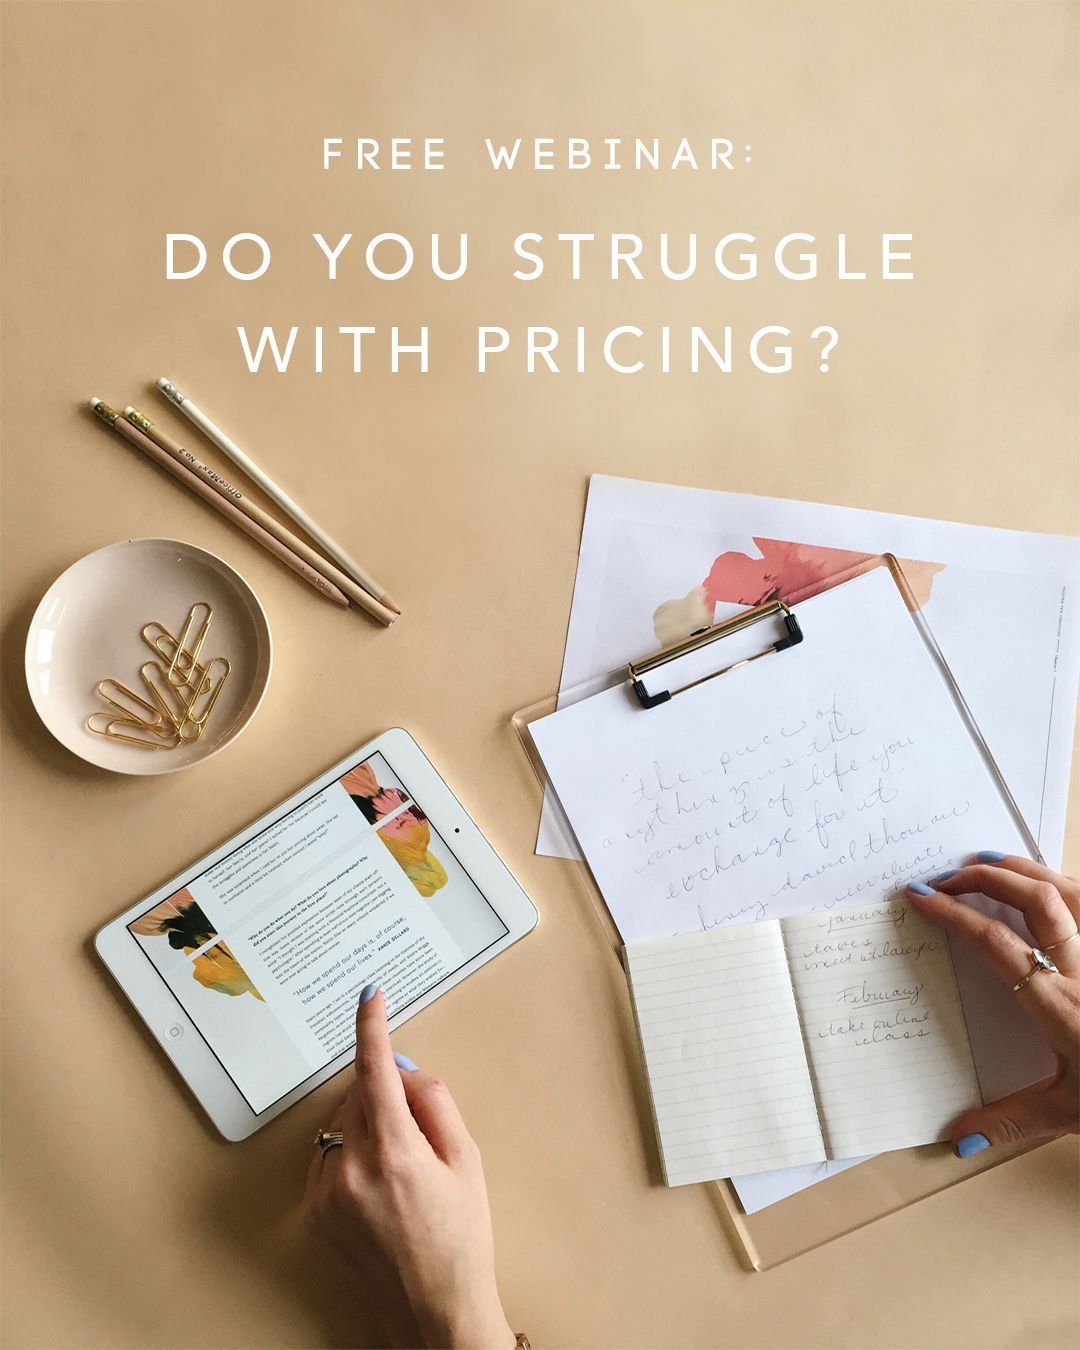 FREE Webinar: Pricing for Creatives